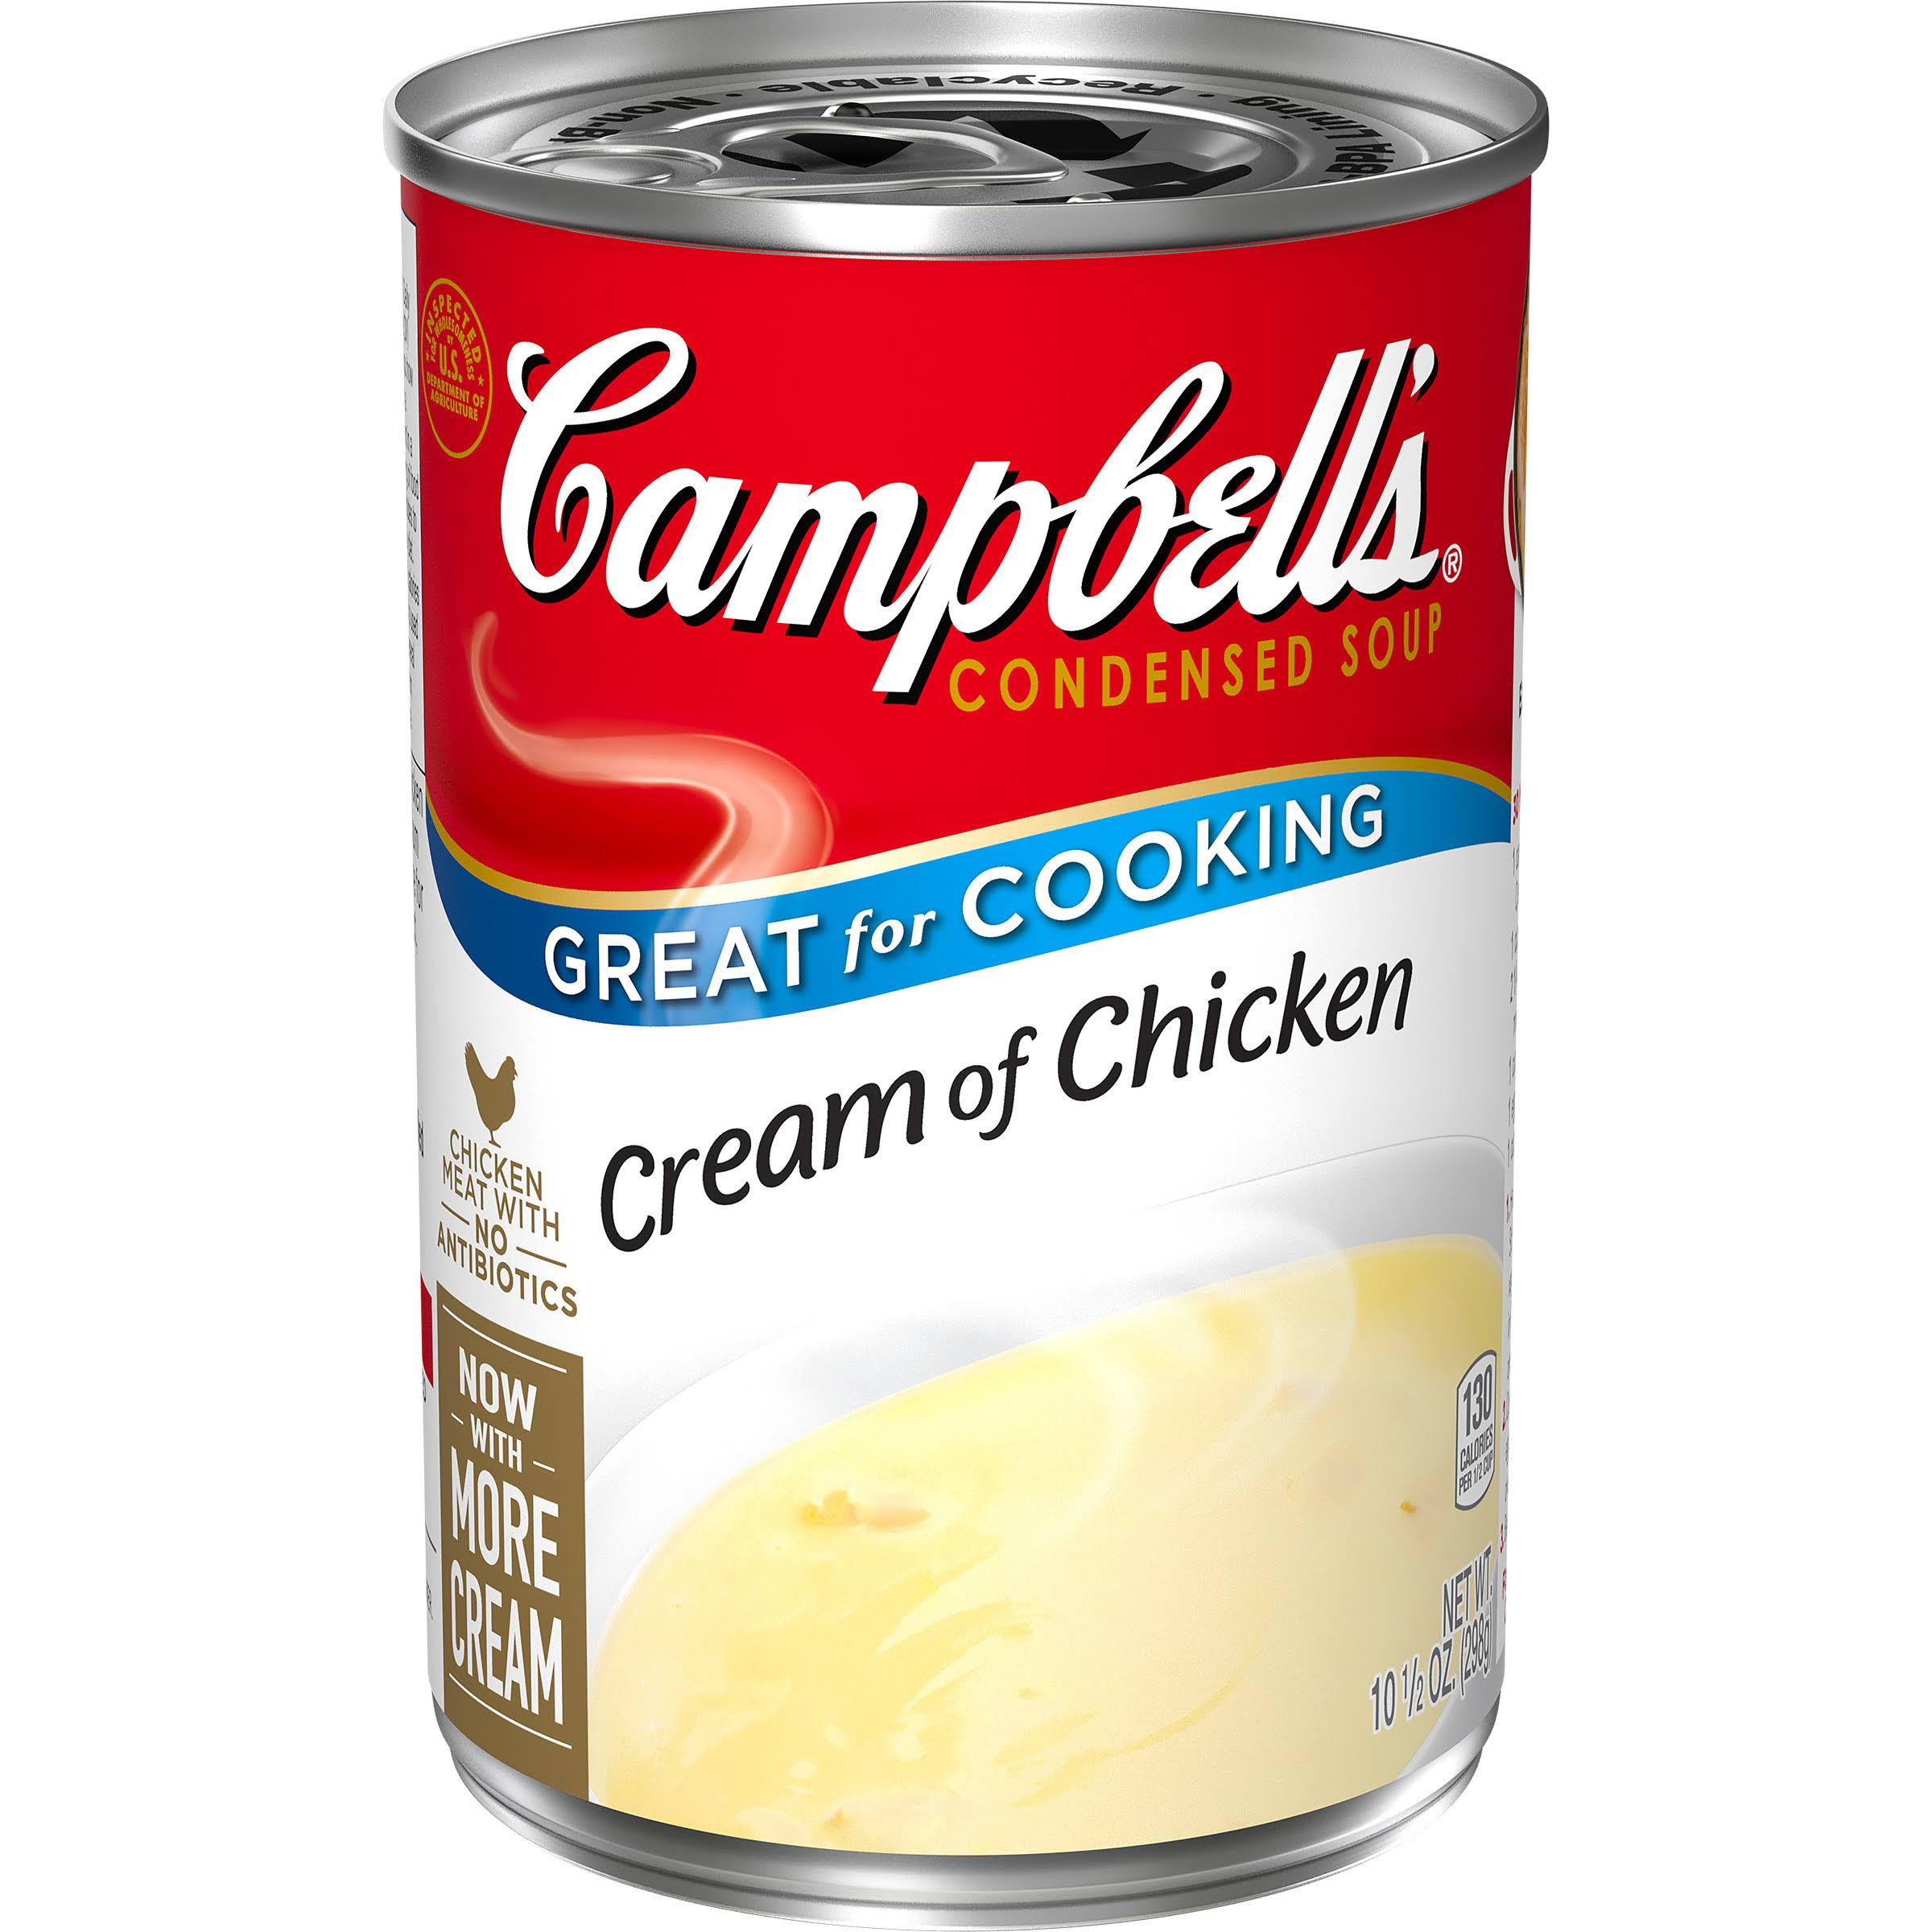 Campbell's Condensed Soup - Cream of Chicken, 10.5oz